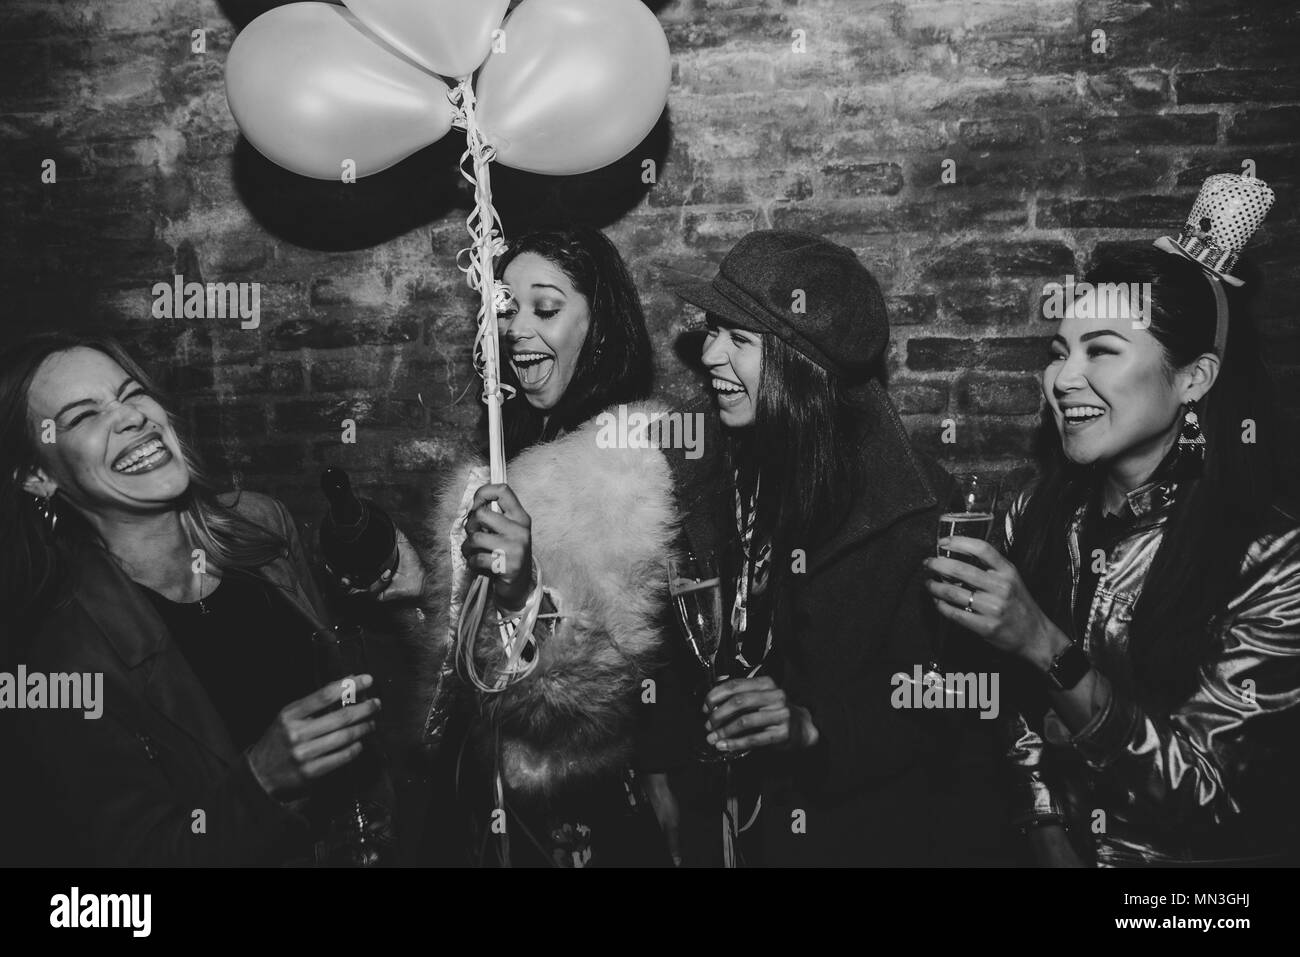 Group of girls celebrating and having fun the club. Concept about women night out - Stock Image